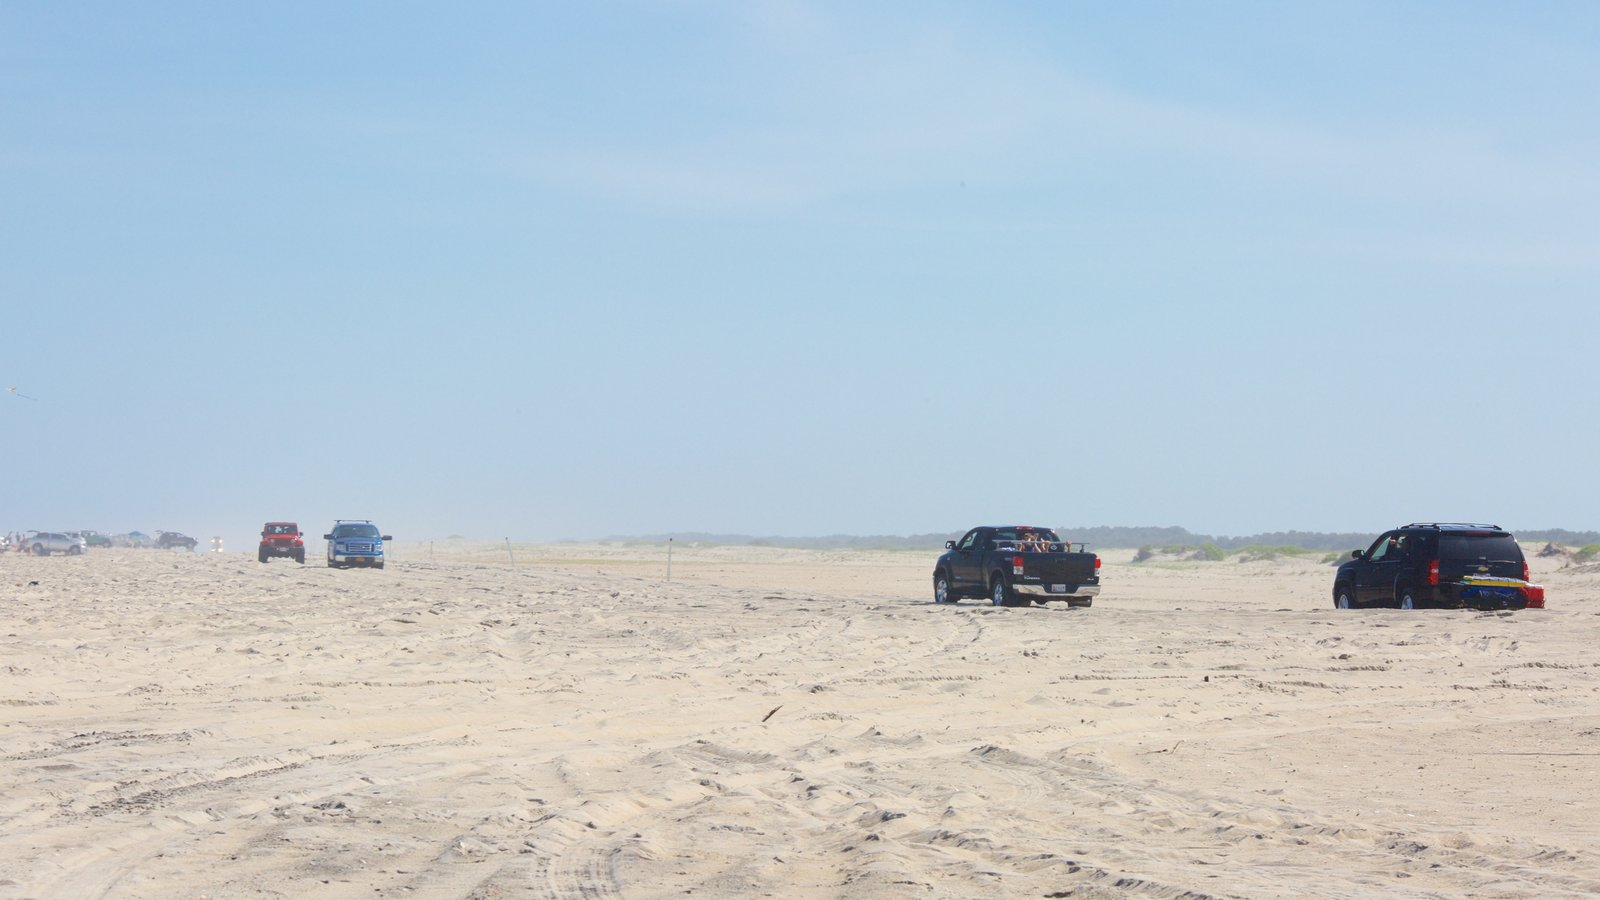 Assateague Island National Seashore showing a sandy beach and 4 wheel driving